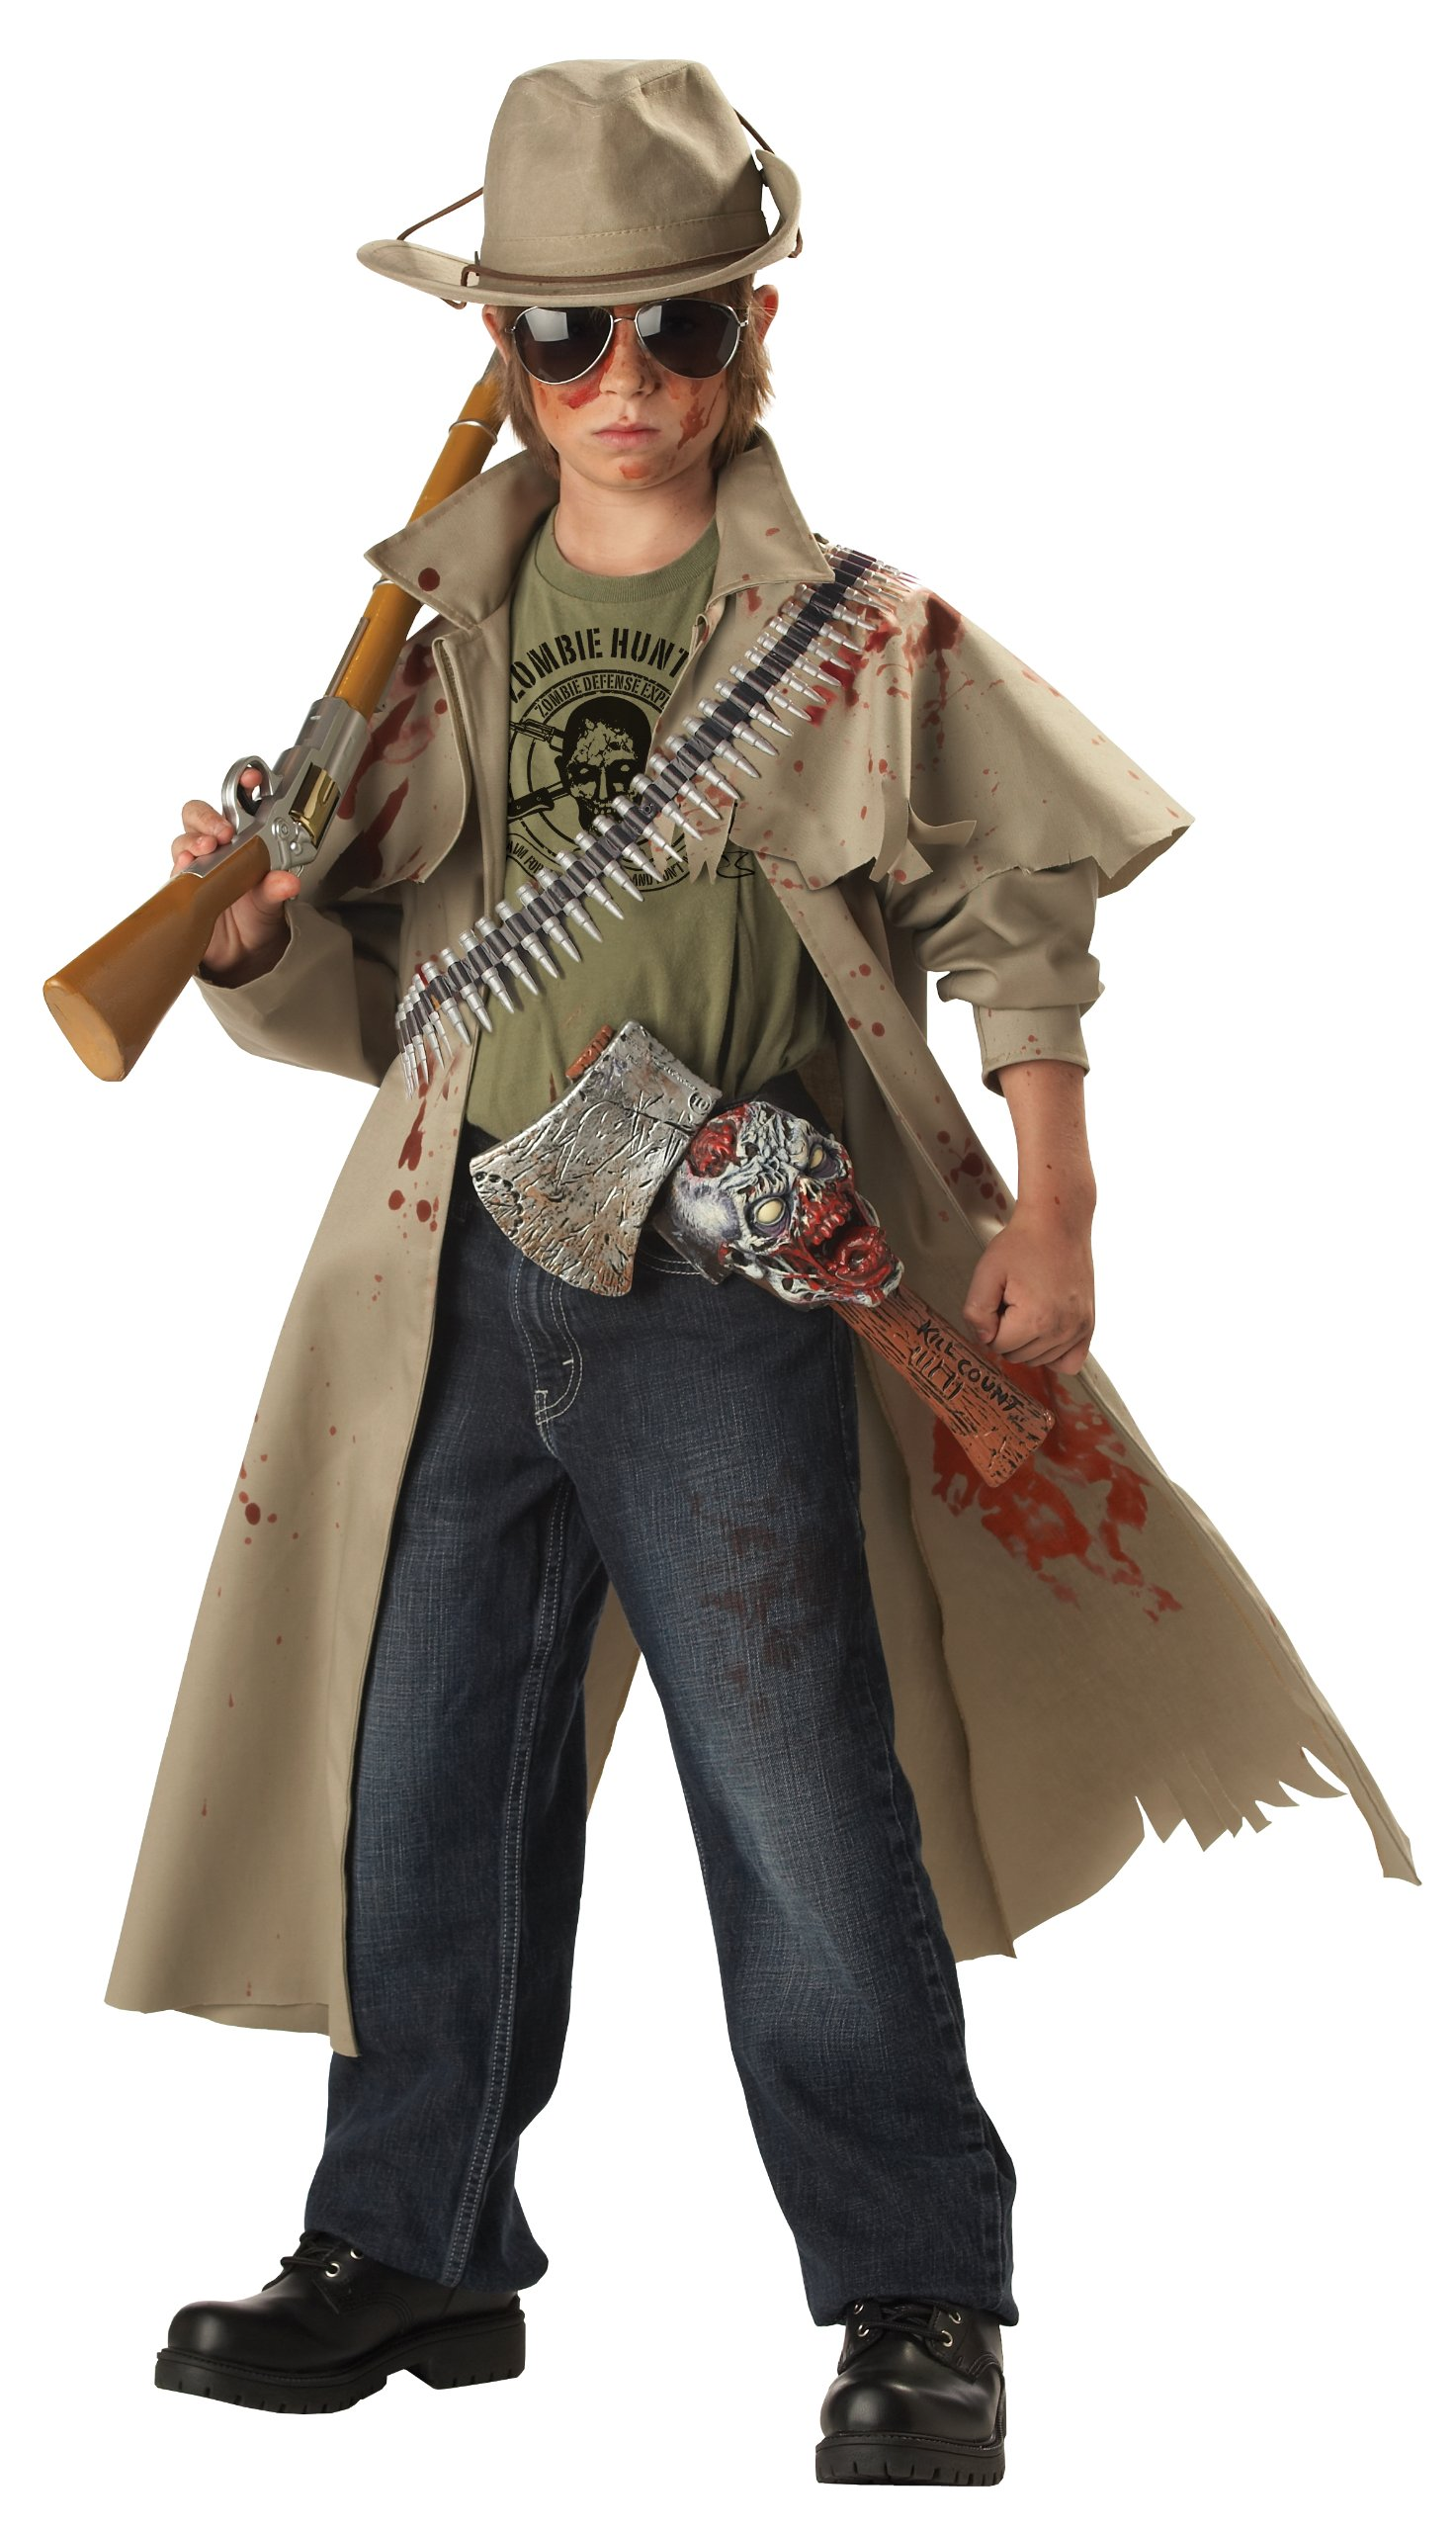 California Costumes Toys Zombie Hunter, Tan, Large by California Costumes